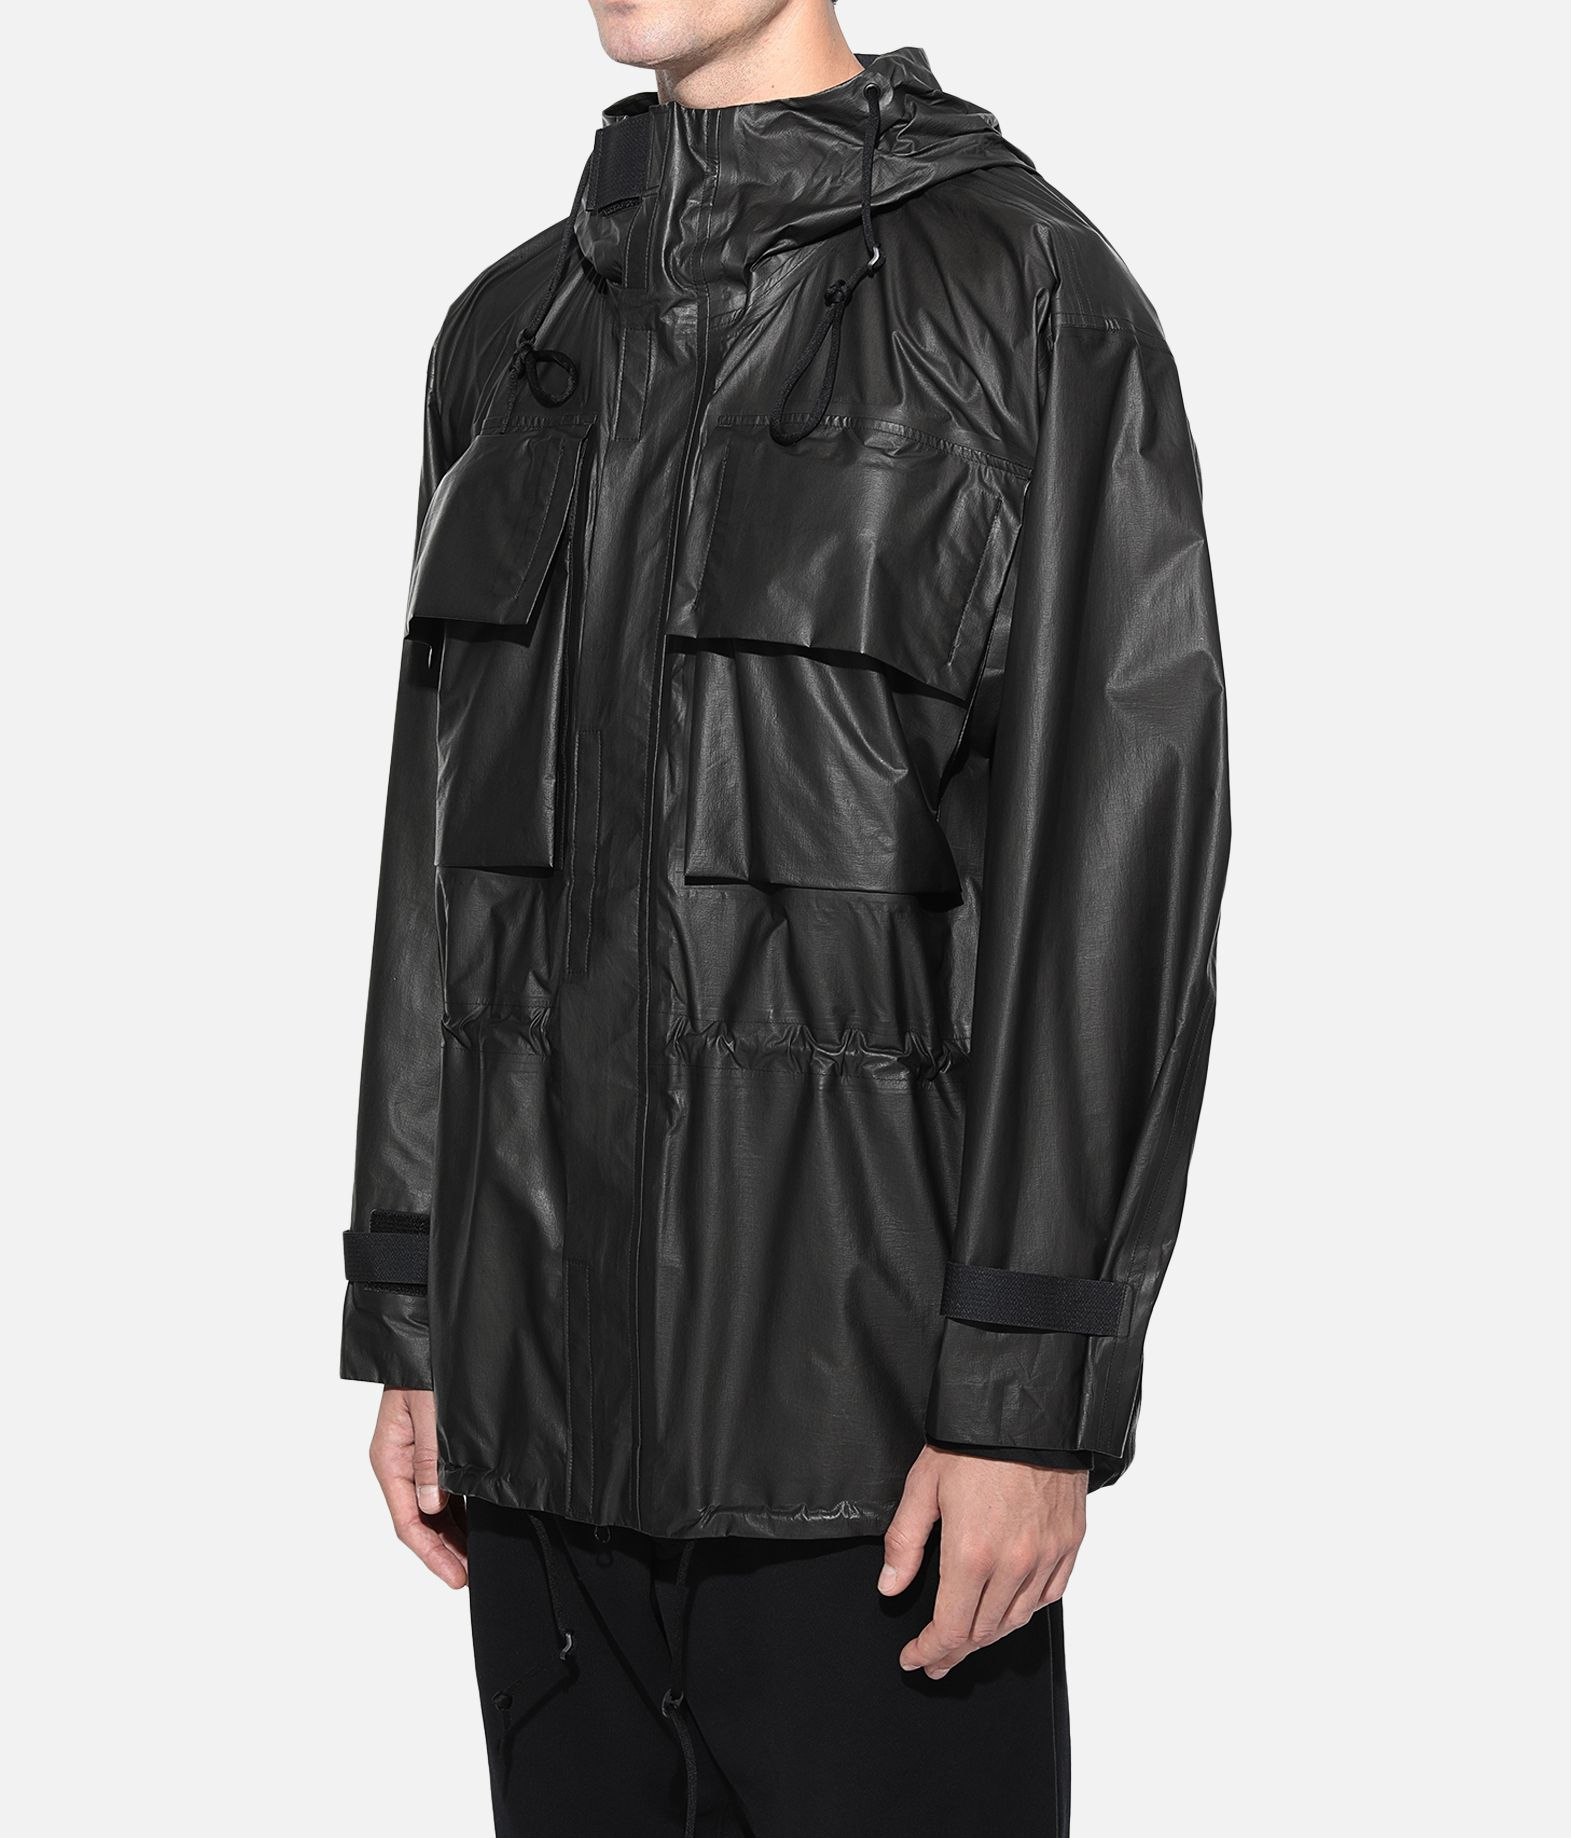 Y-3 Y-3 GORE-TEX Utility Hoodie Jacket  Raincoat Man e